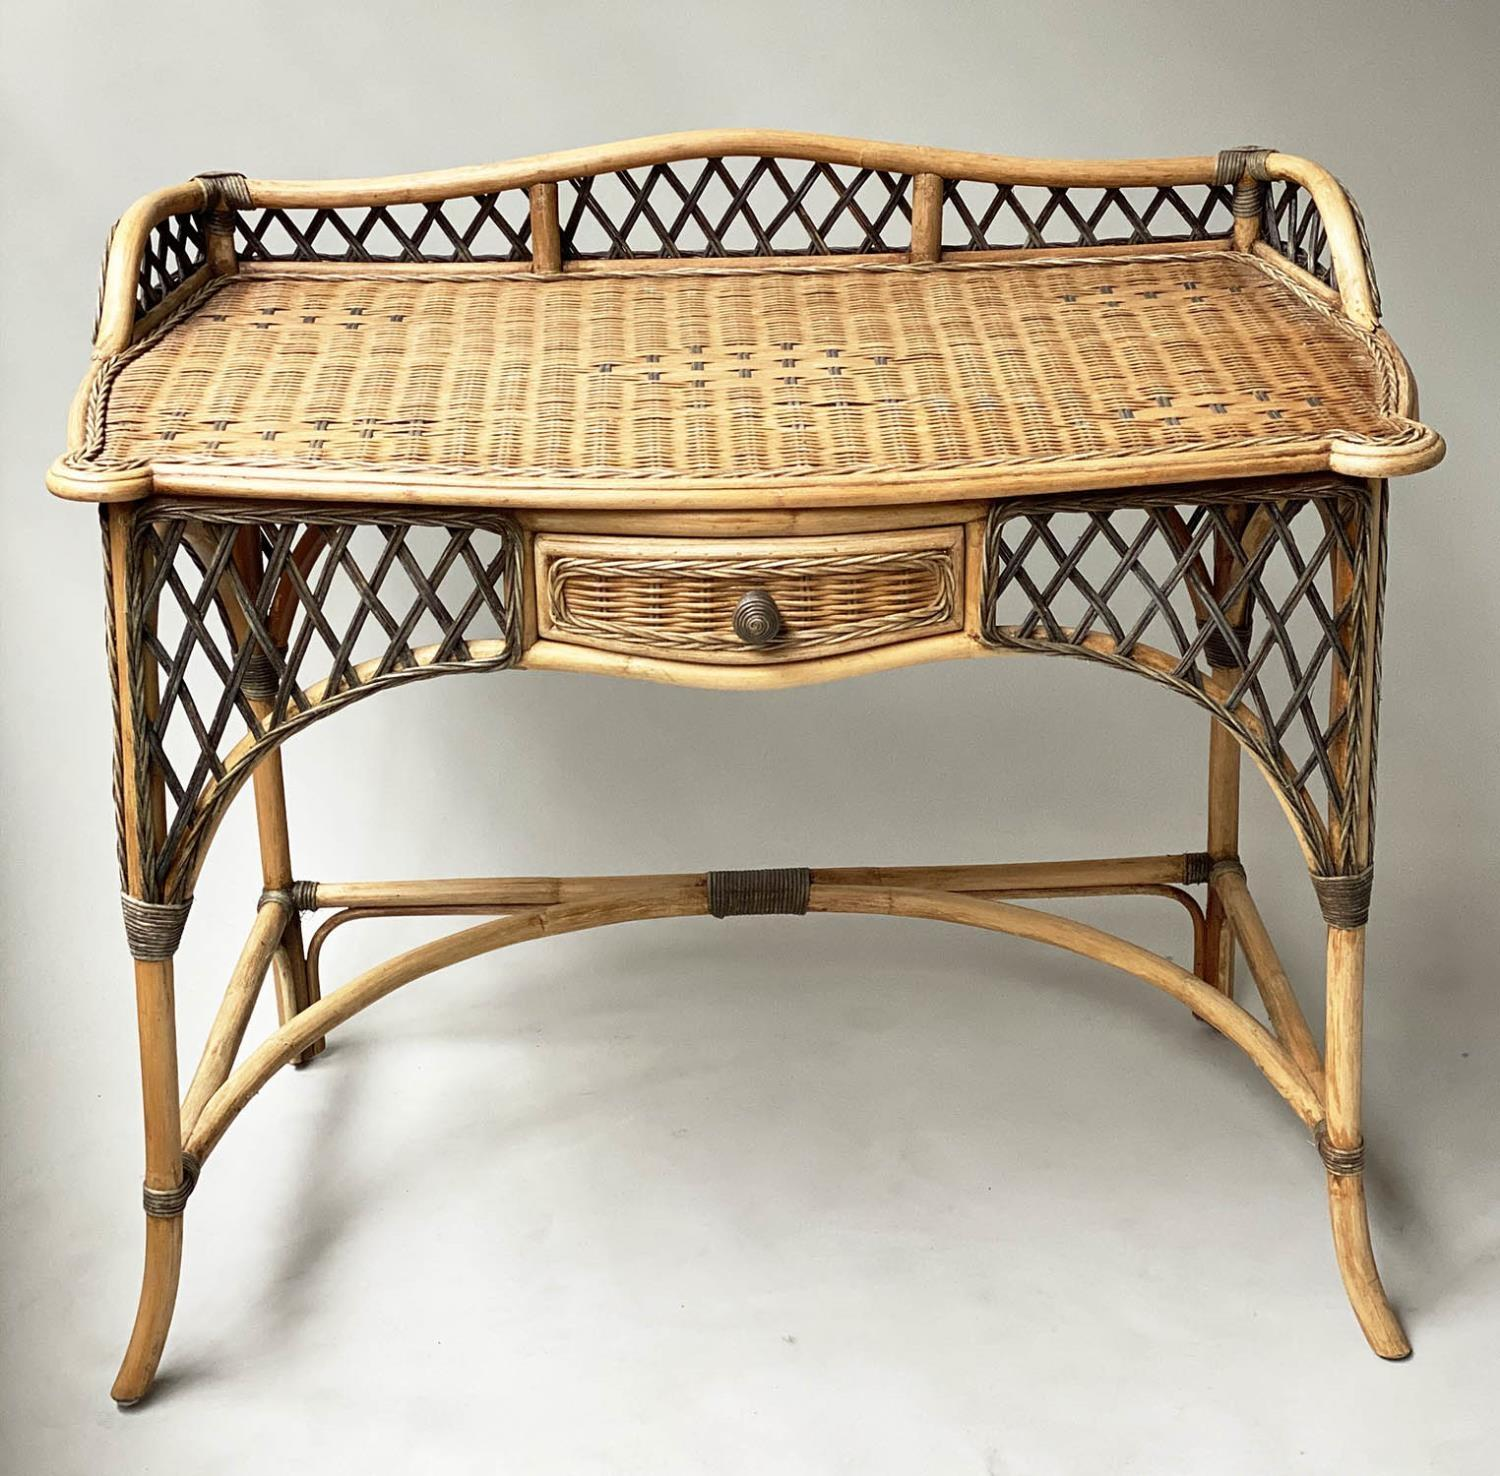 SIDE/WRITING TABLE, vintage Ralph Lauren style two tone rattan with gallery and frieze drawer, 103cm - Image 6 of 6